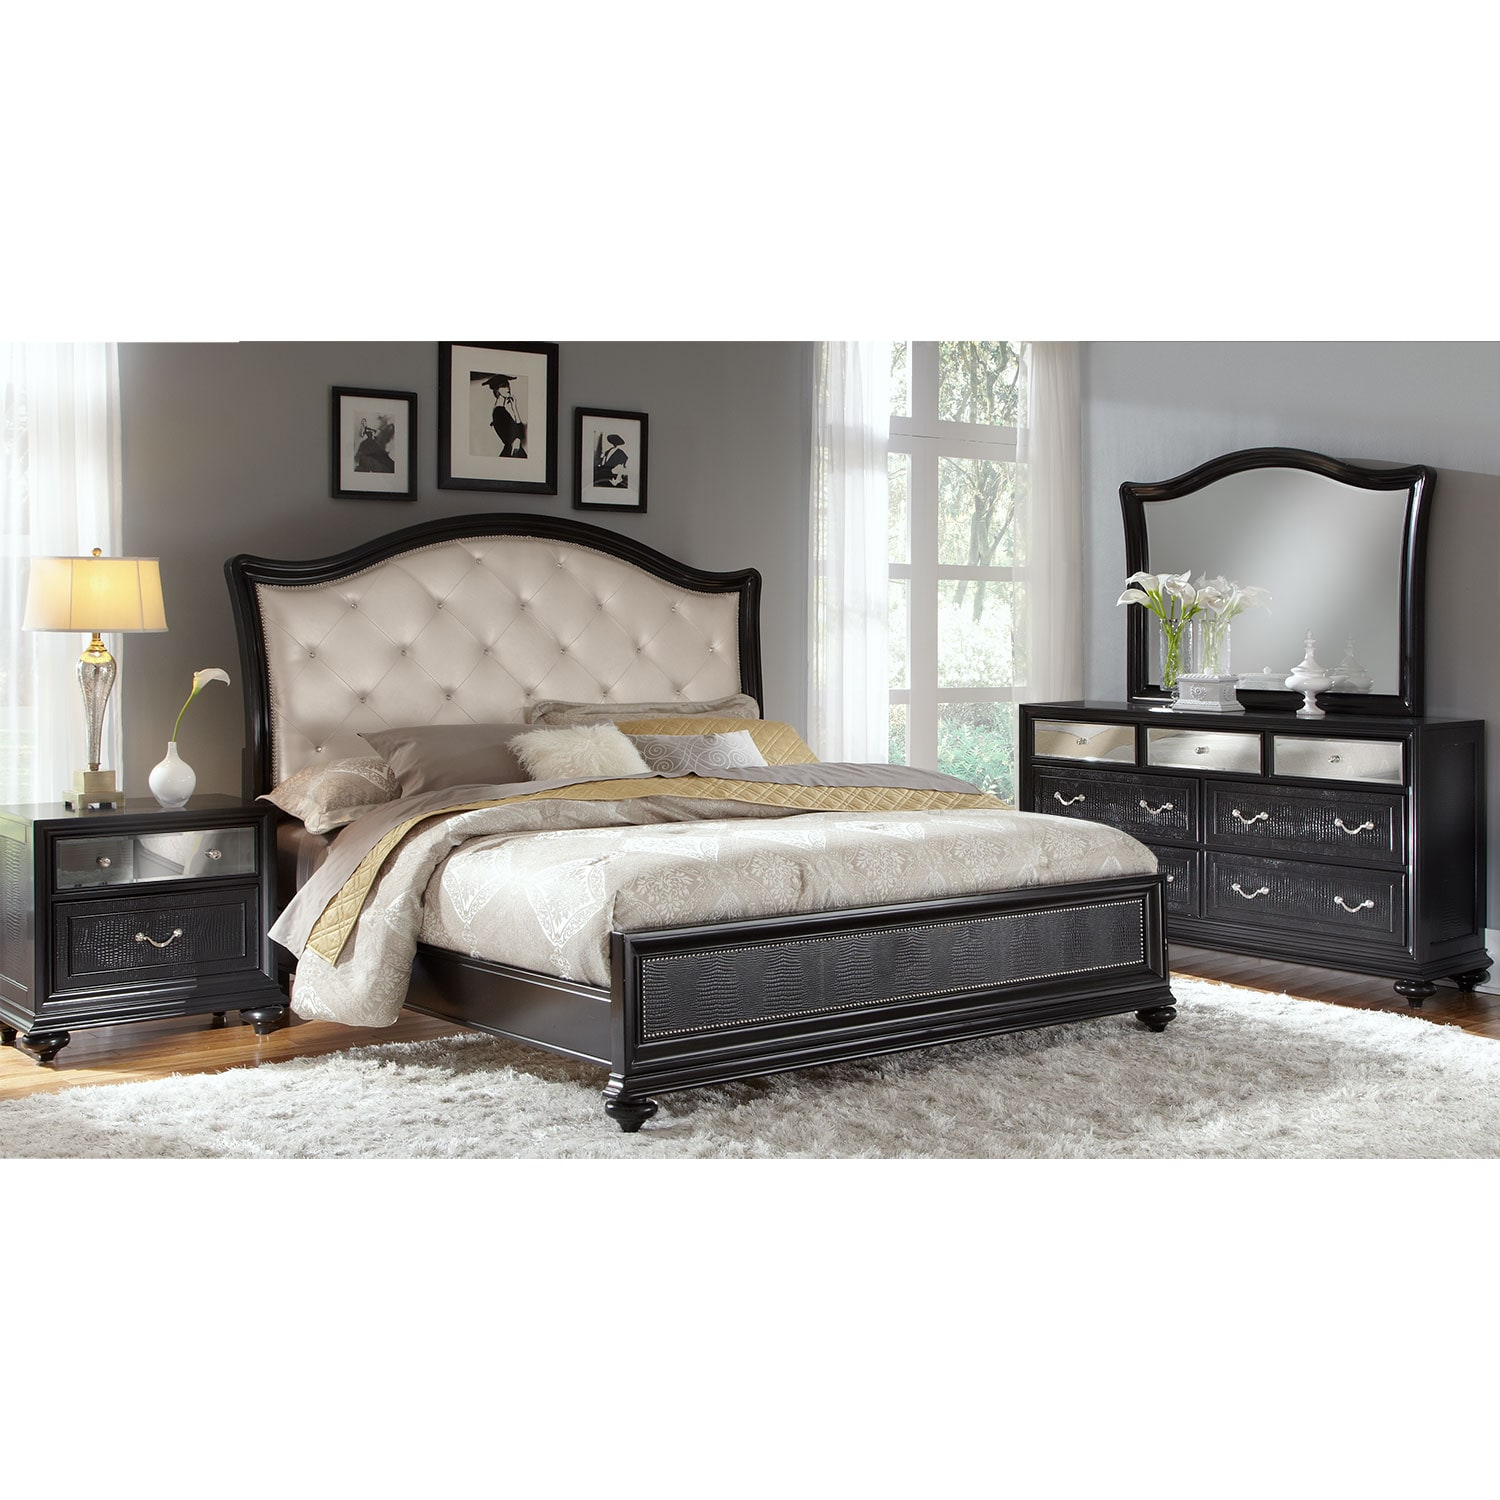 Shop 6 Piece Bedroom Sets